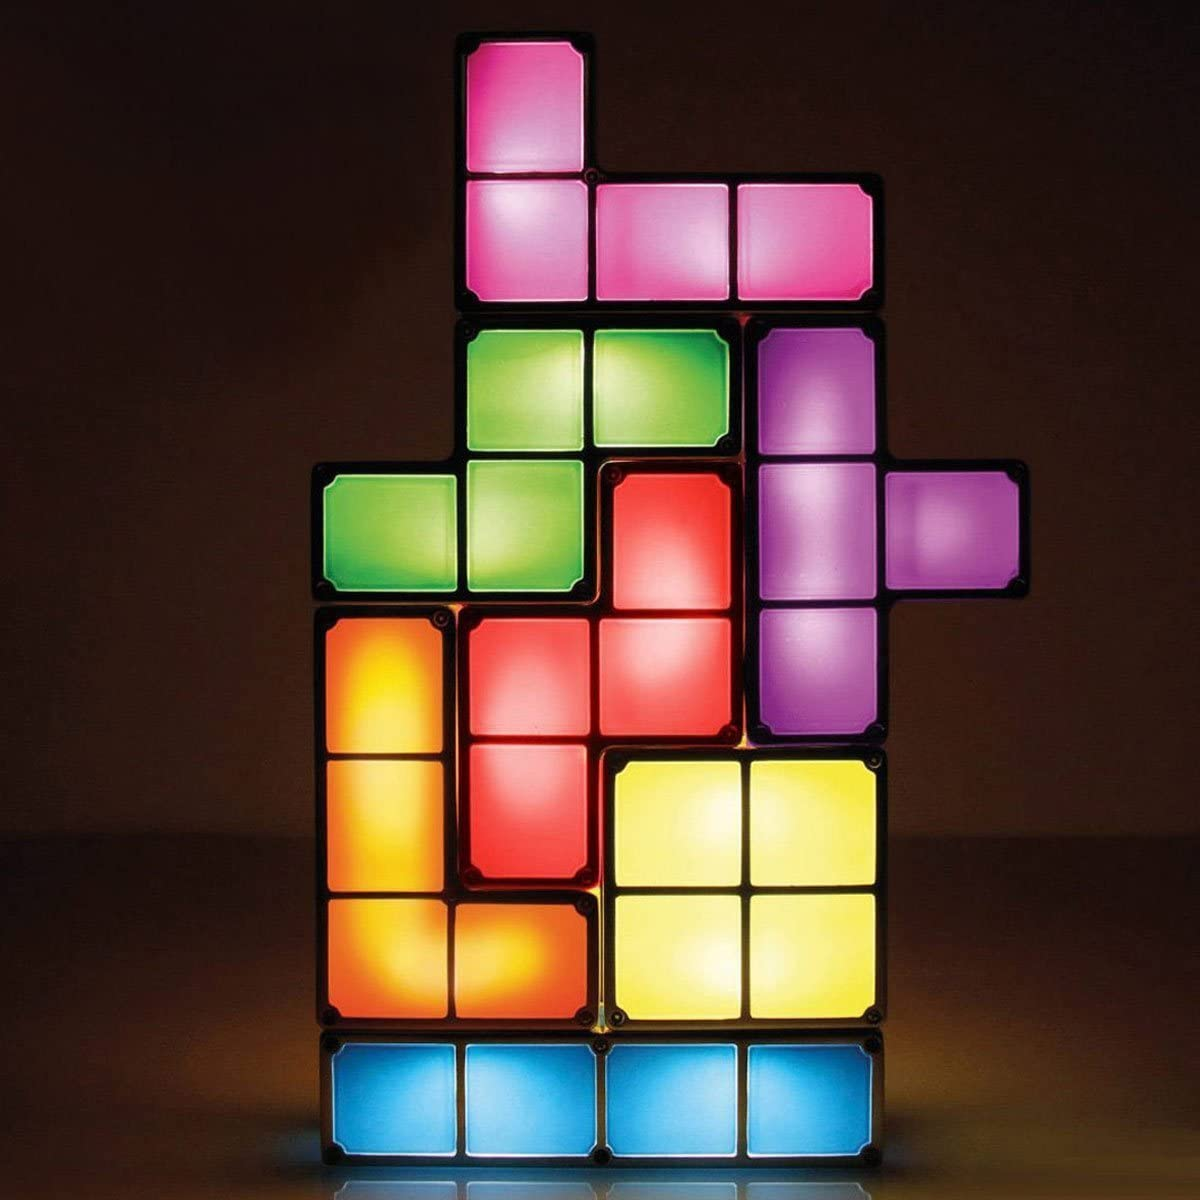 Image of a glowing Tetris lamp made of seven individual light up blocks